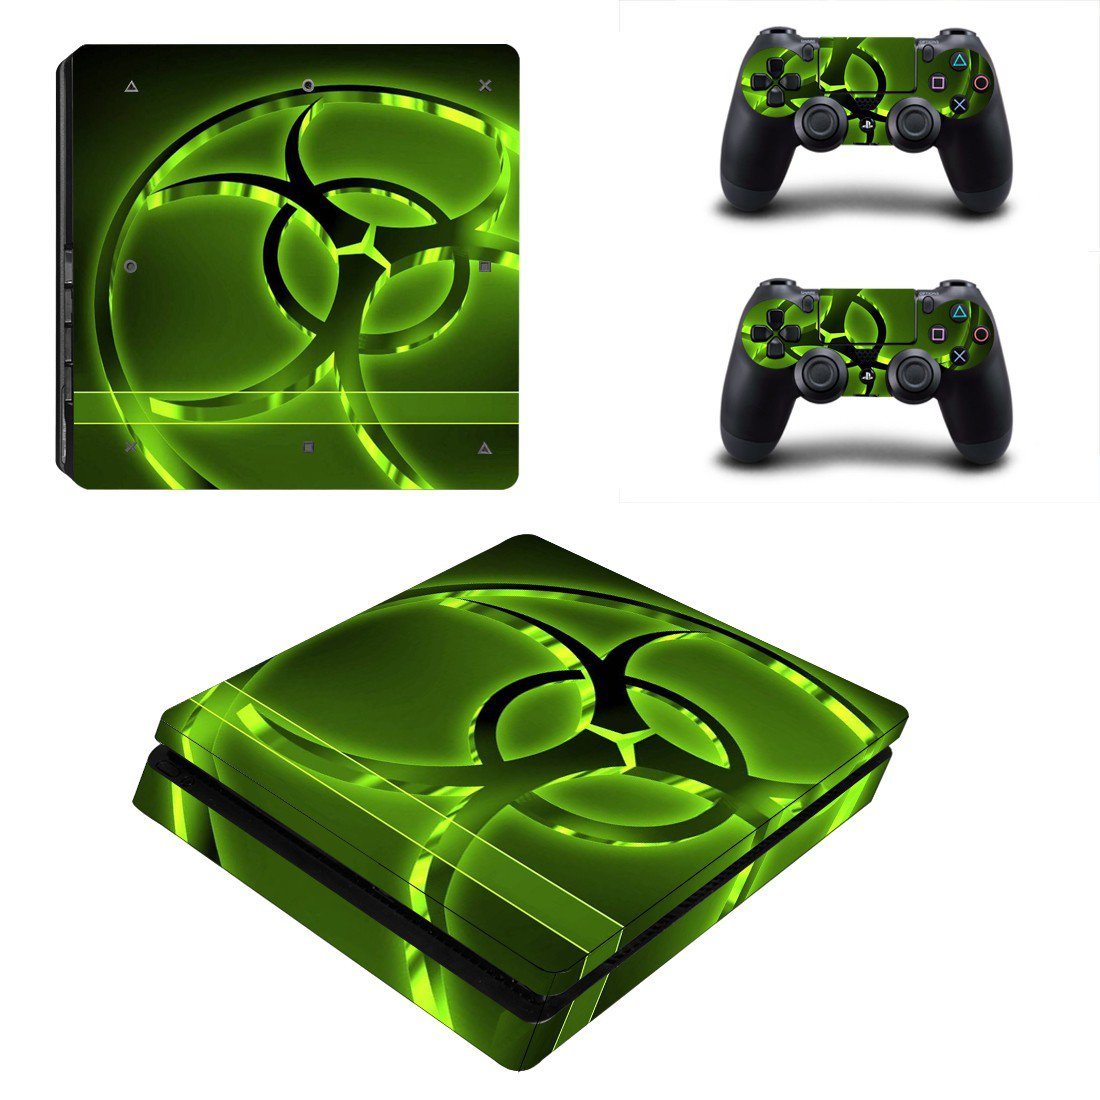 Biohazard decal skin sticker for PS4 Slim console and controllers